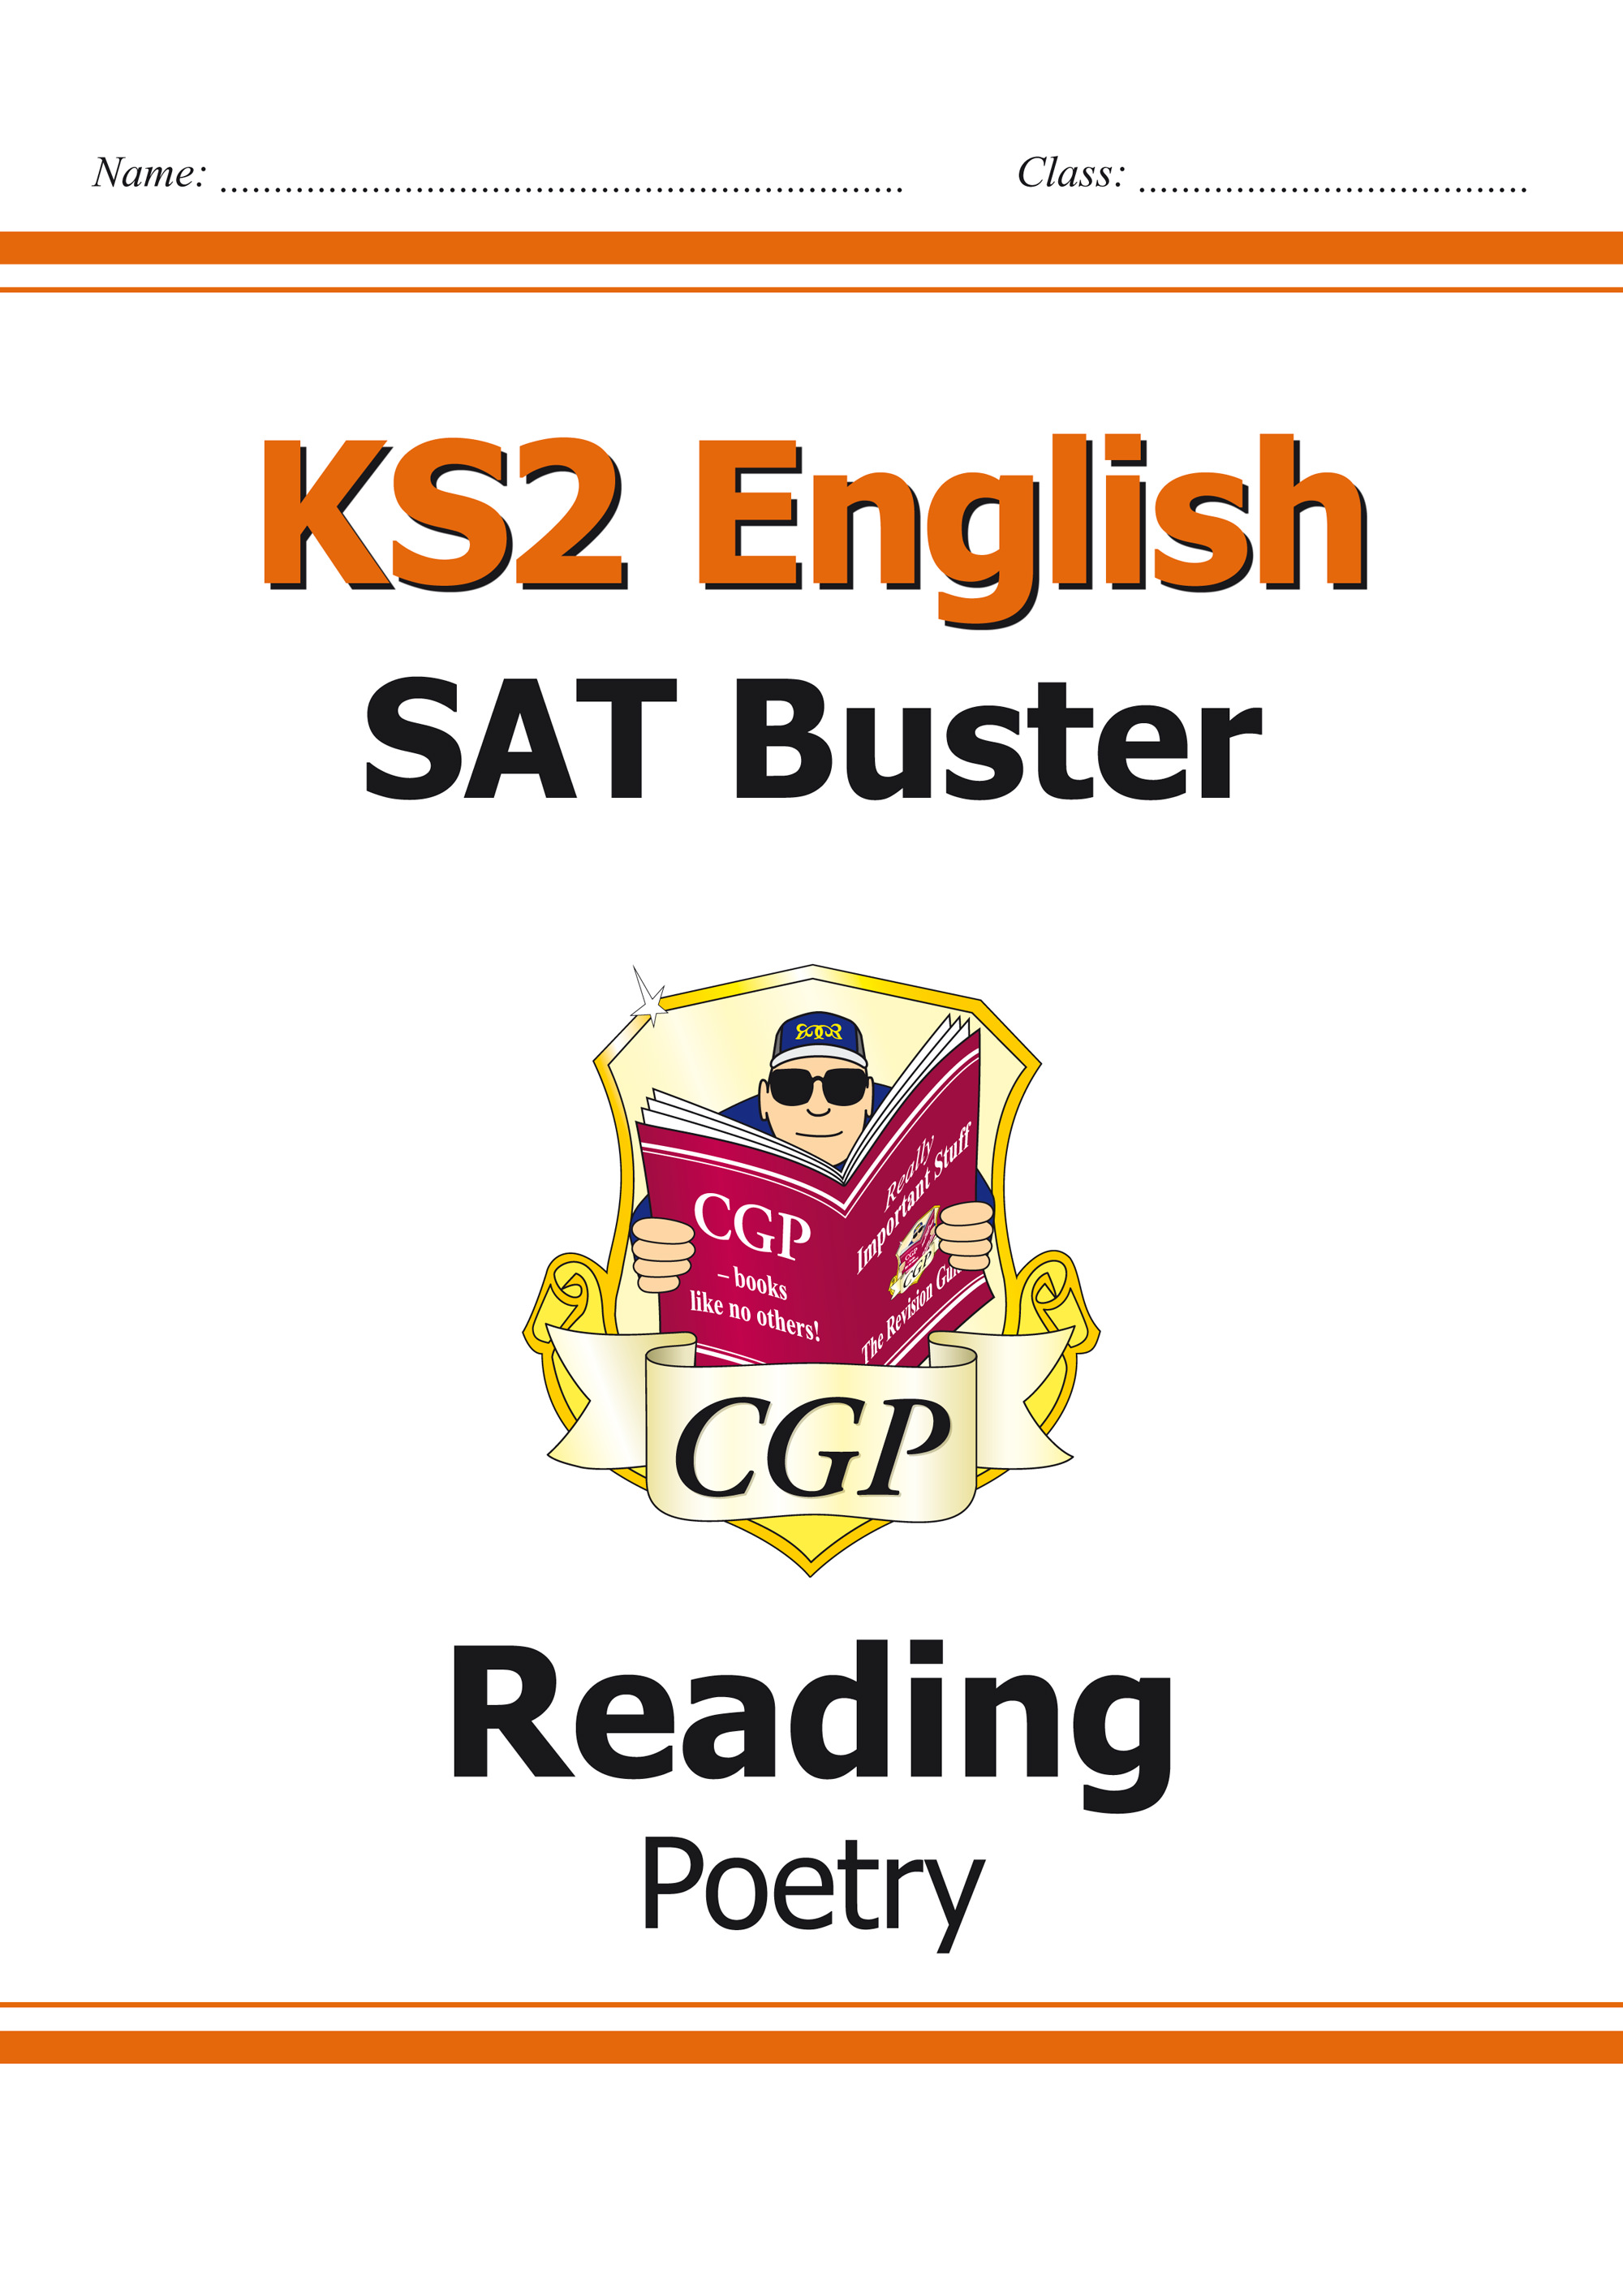 E6FRP21 - KS2 English Reading SAT Buster: Poetry Book 1 (for the 2019 tests)